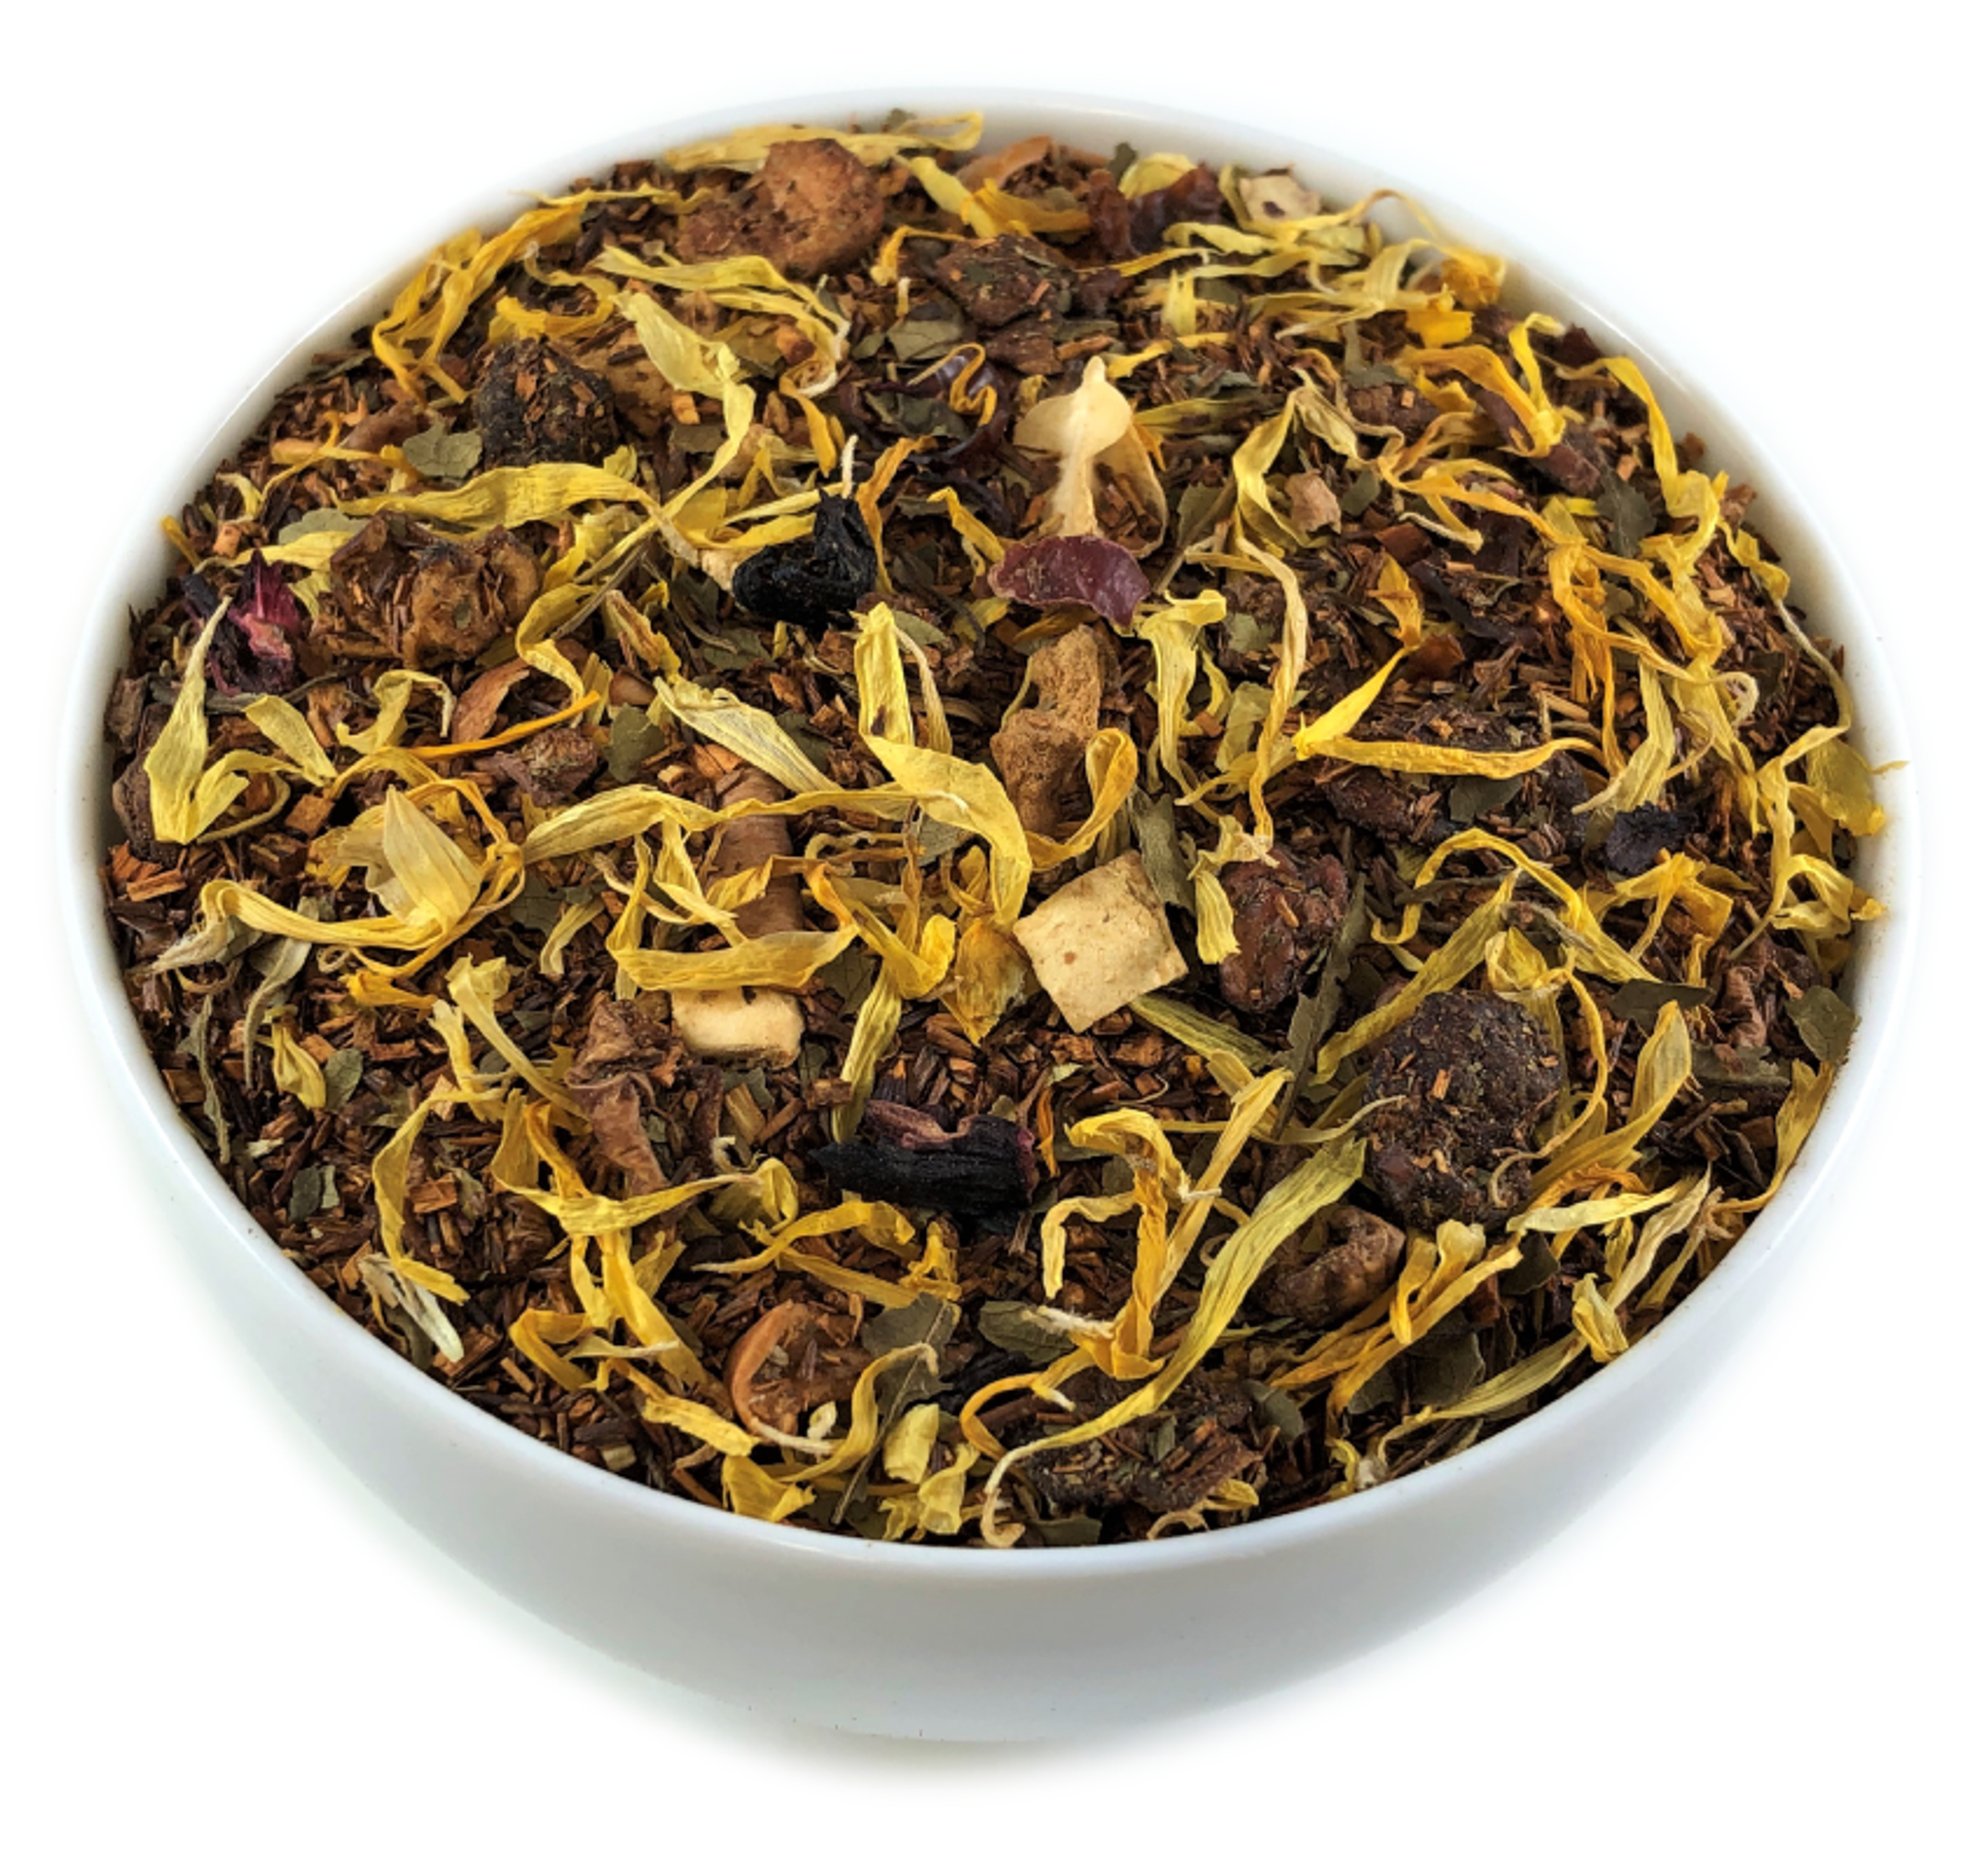 Cranberry Blood Orange Rooibos